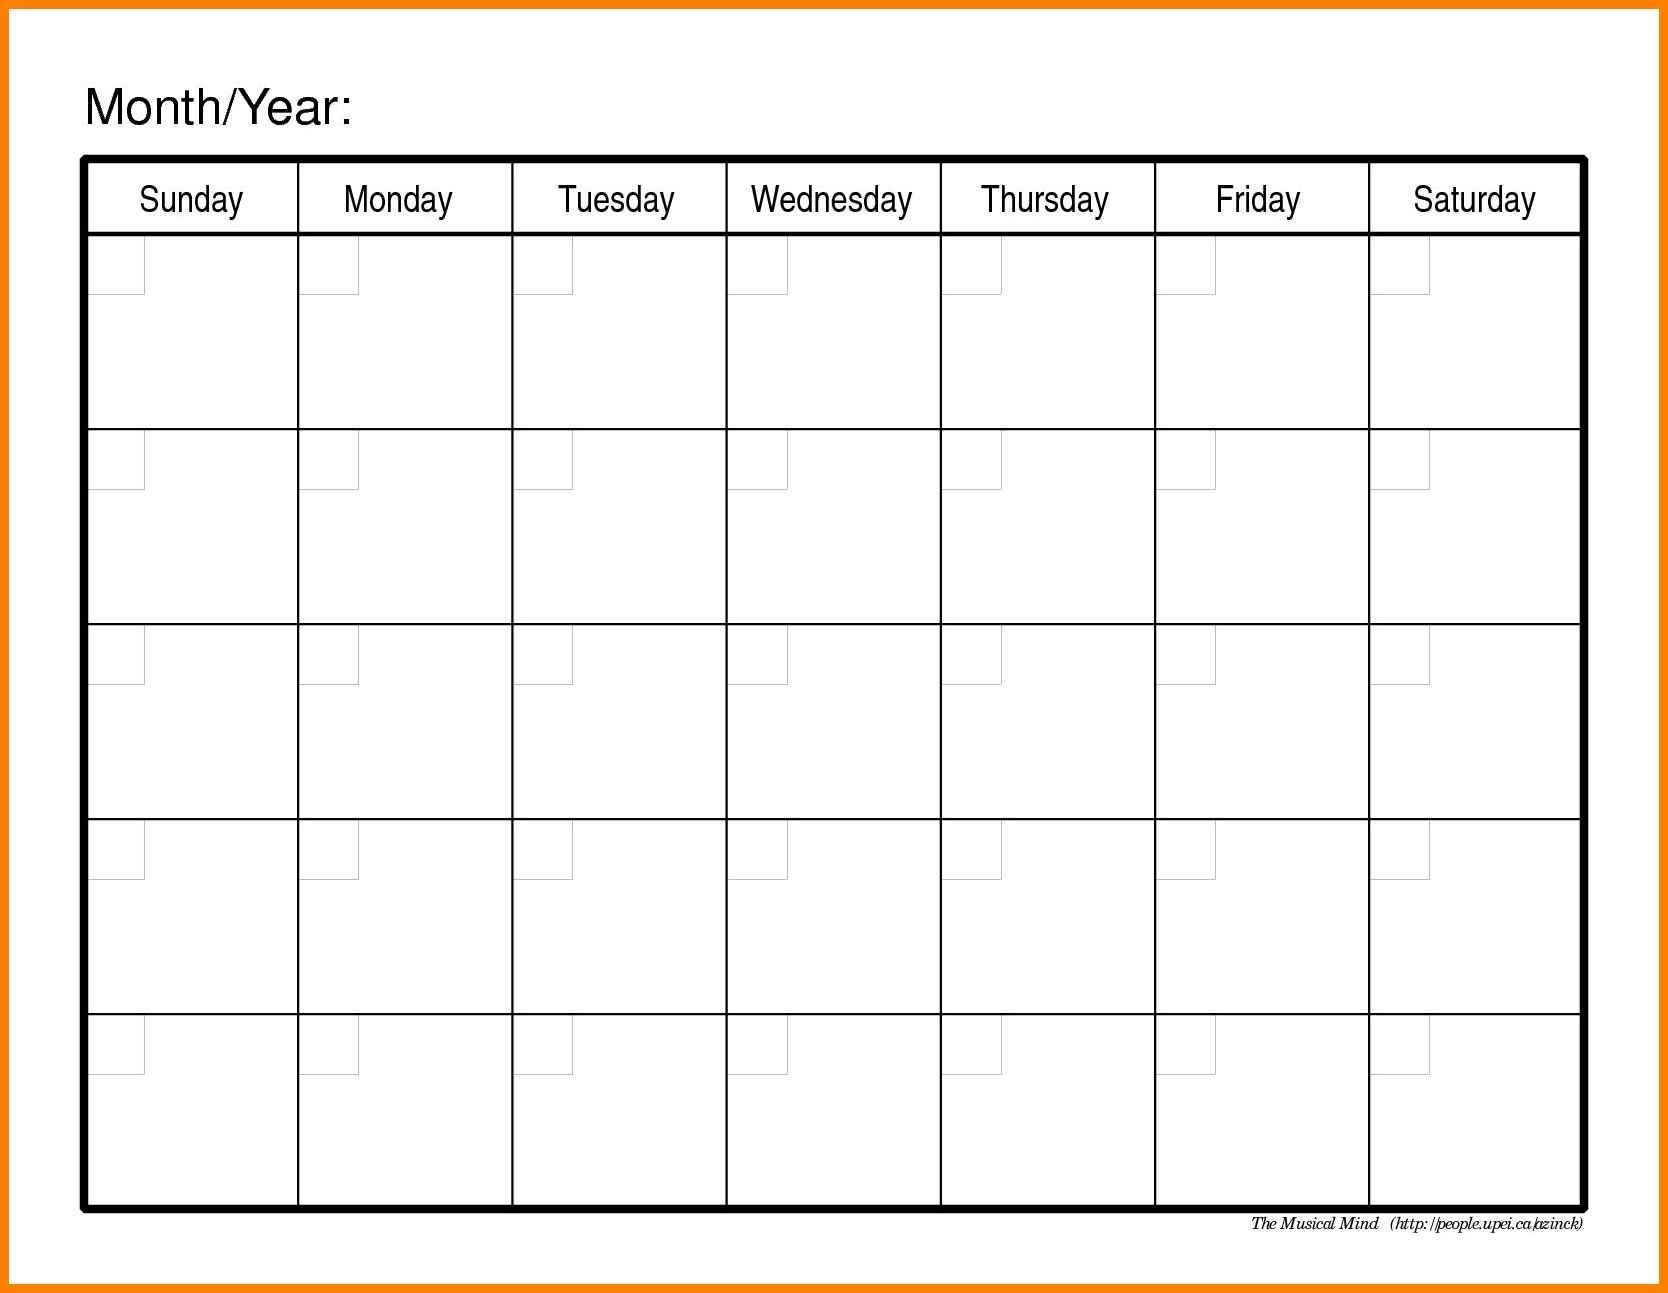 Monthly Calendars To Print Out And Fill :-Free Calendar Online Calendar To Fill In